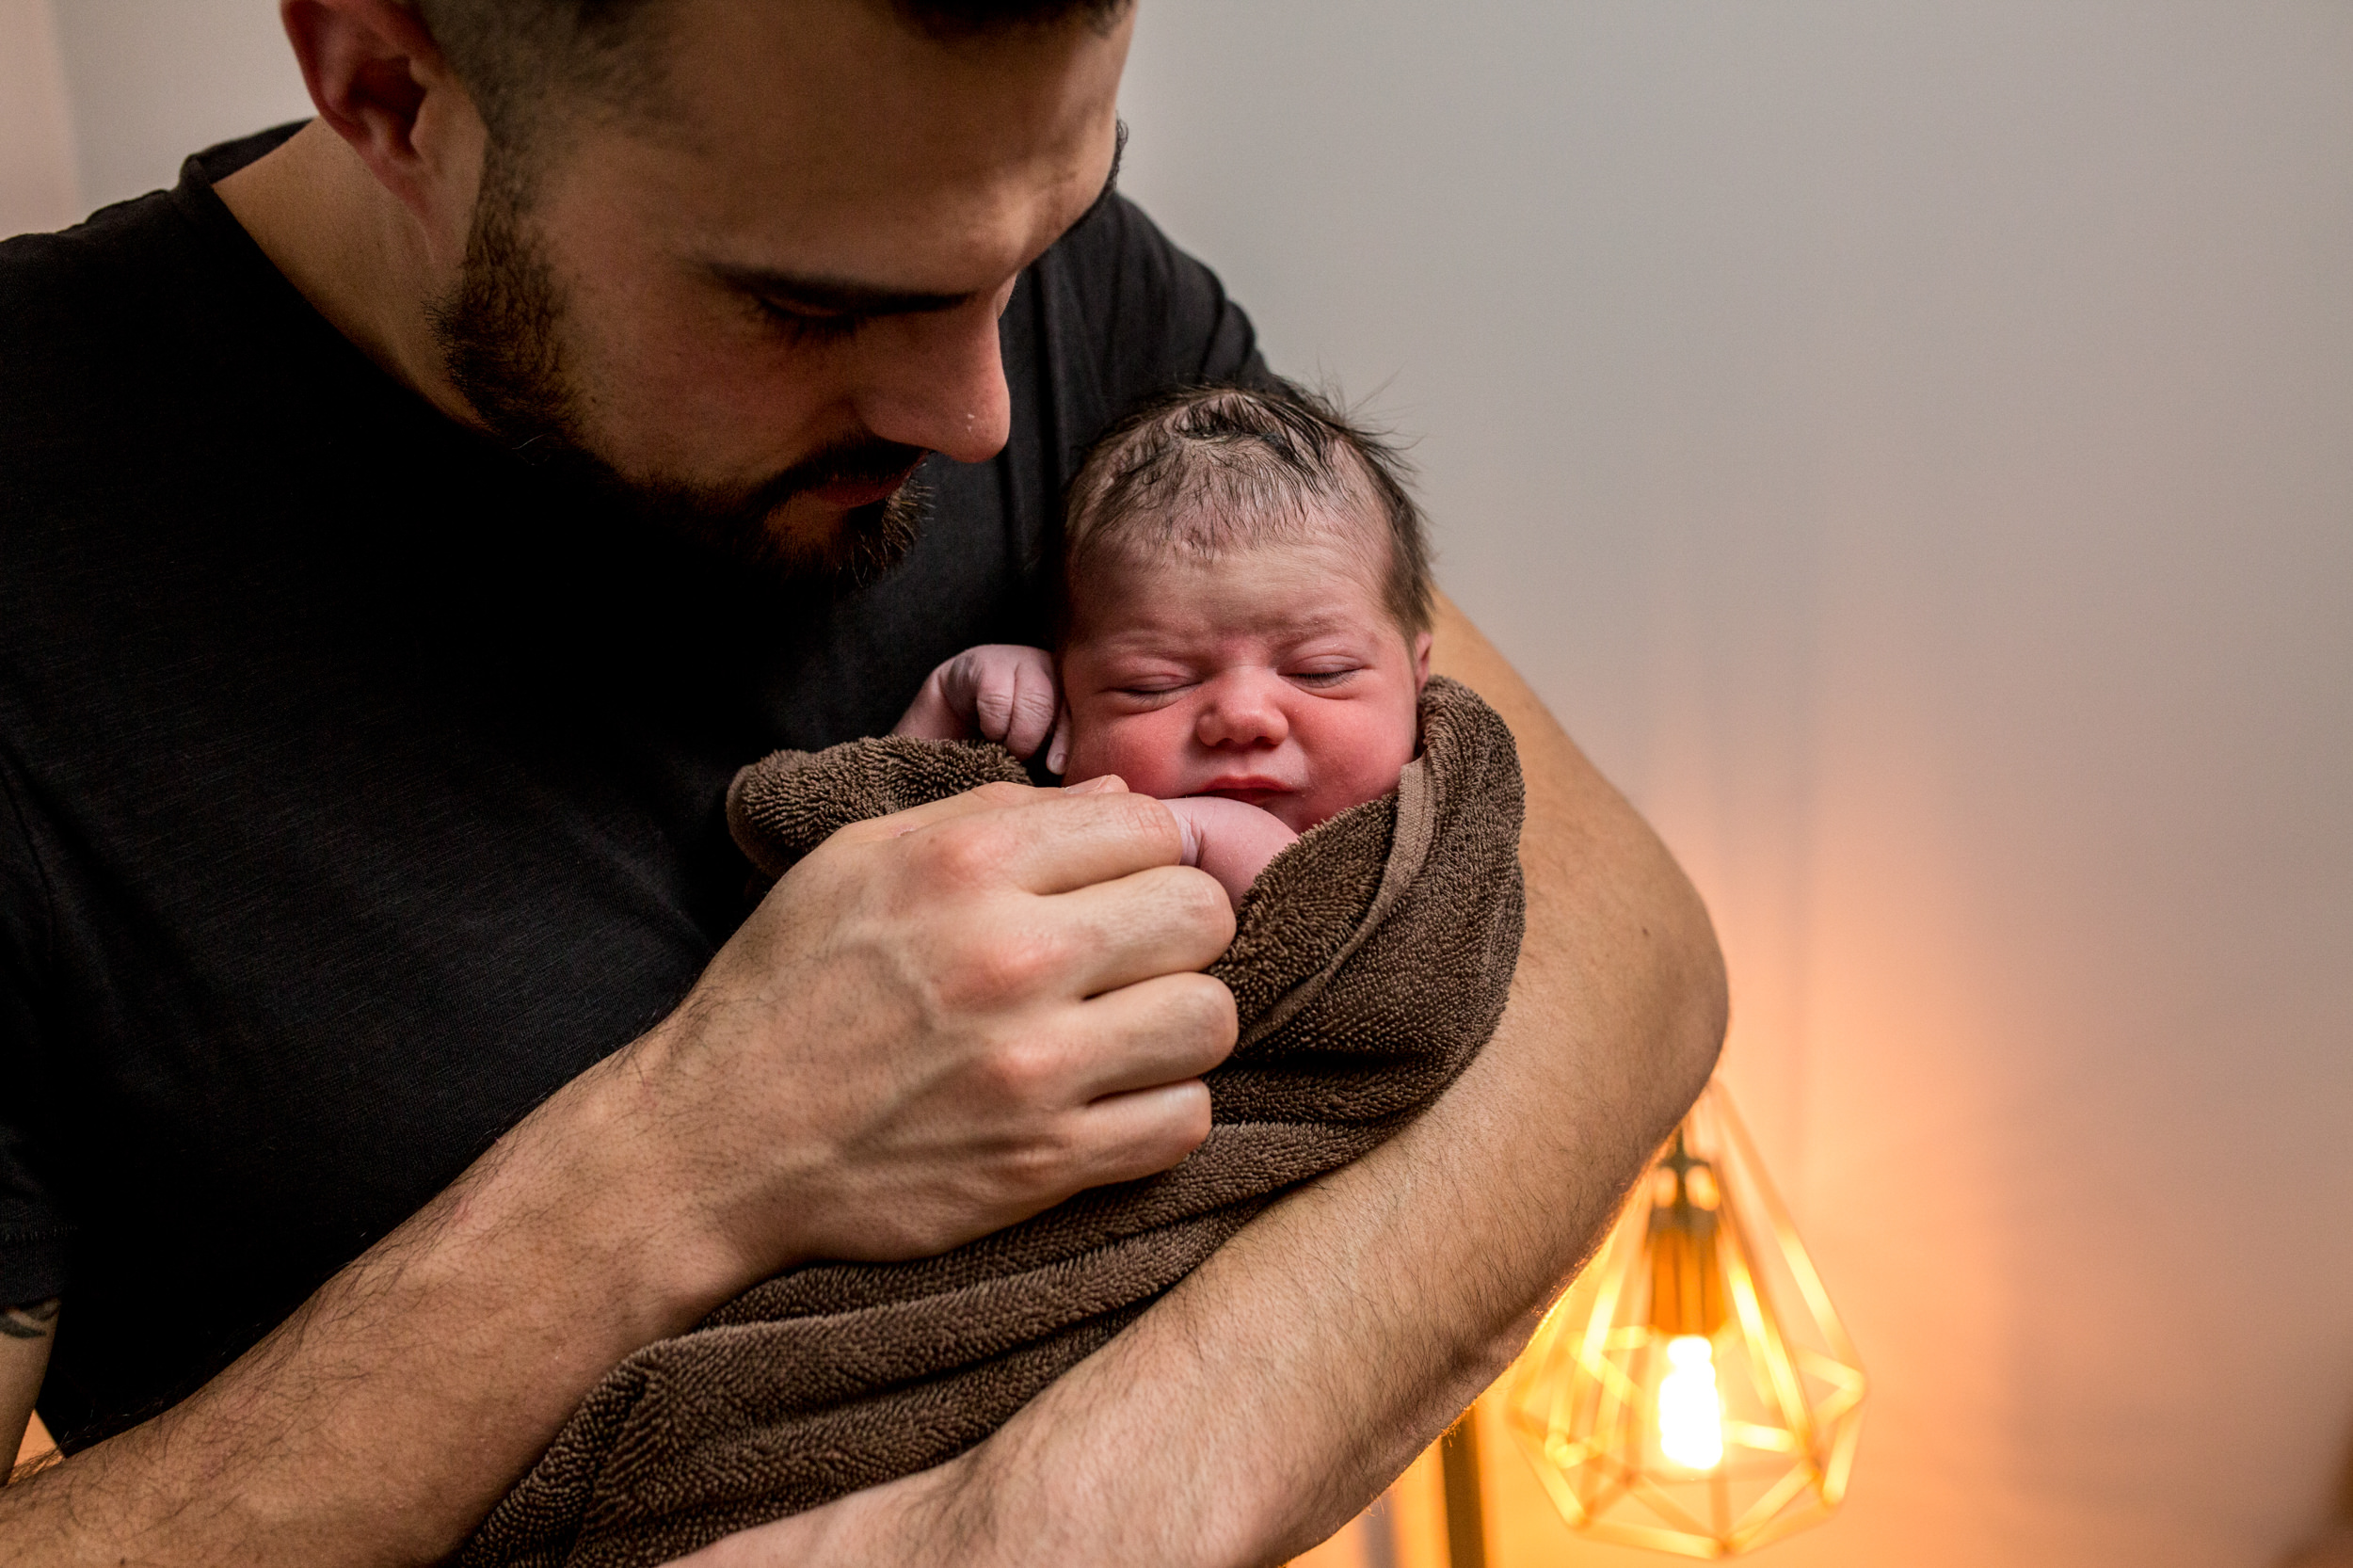 dad standing holding baby in a brown towel